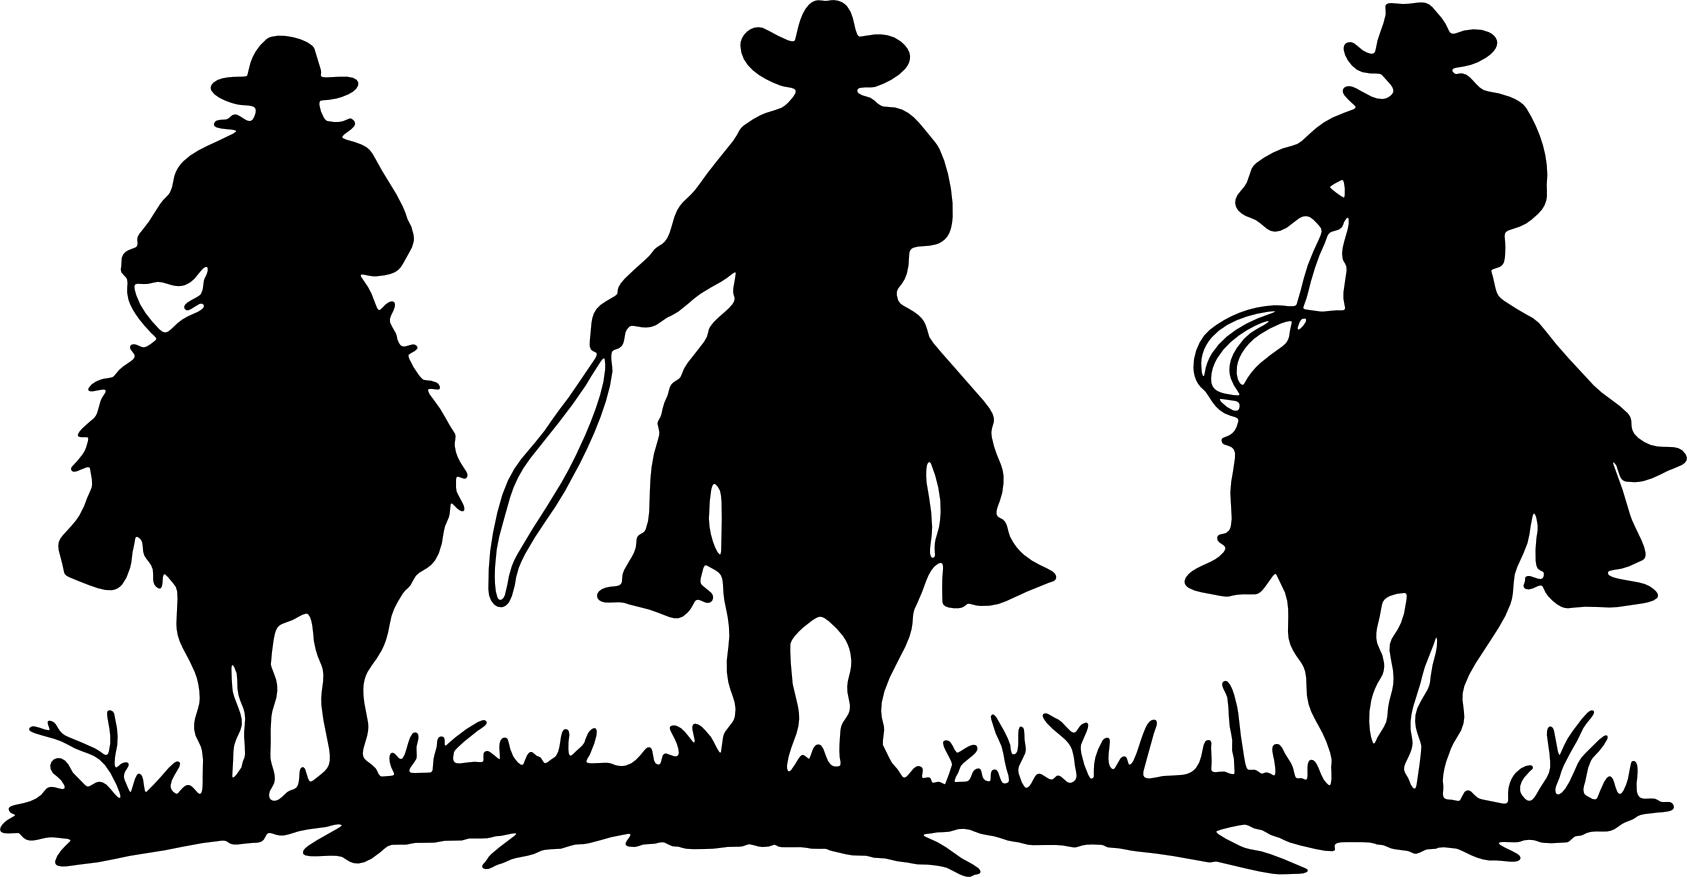 Free clipart cowboys walking with horse vector free stock Free Cowboy Silhouette Vector, Download Free Clip Art, Free Clip Art ... vector free stock